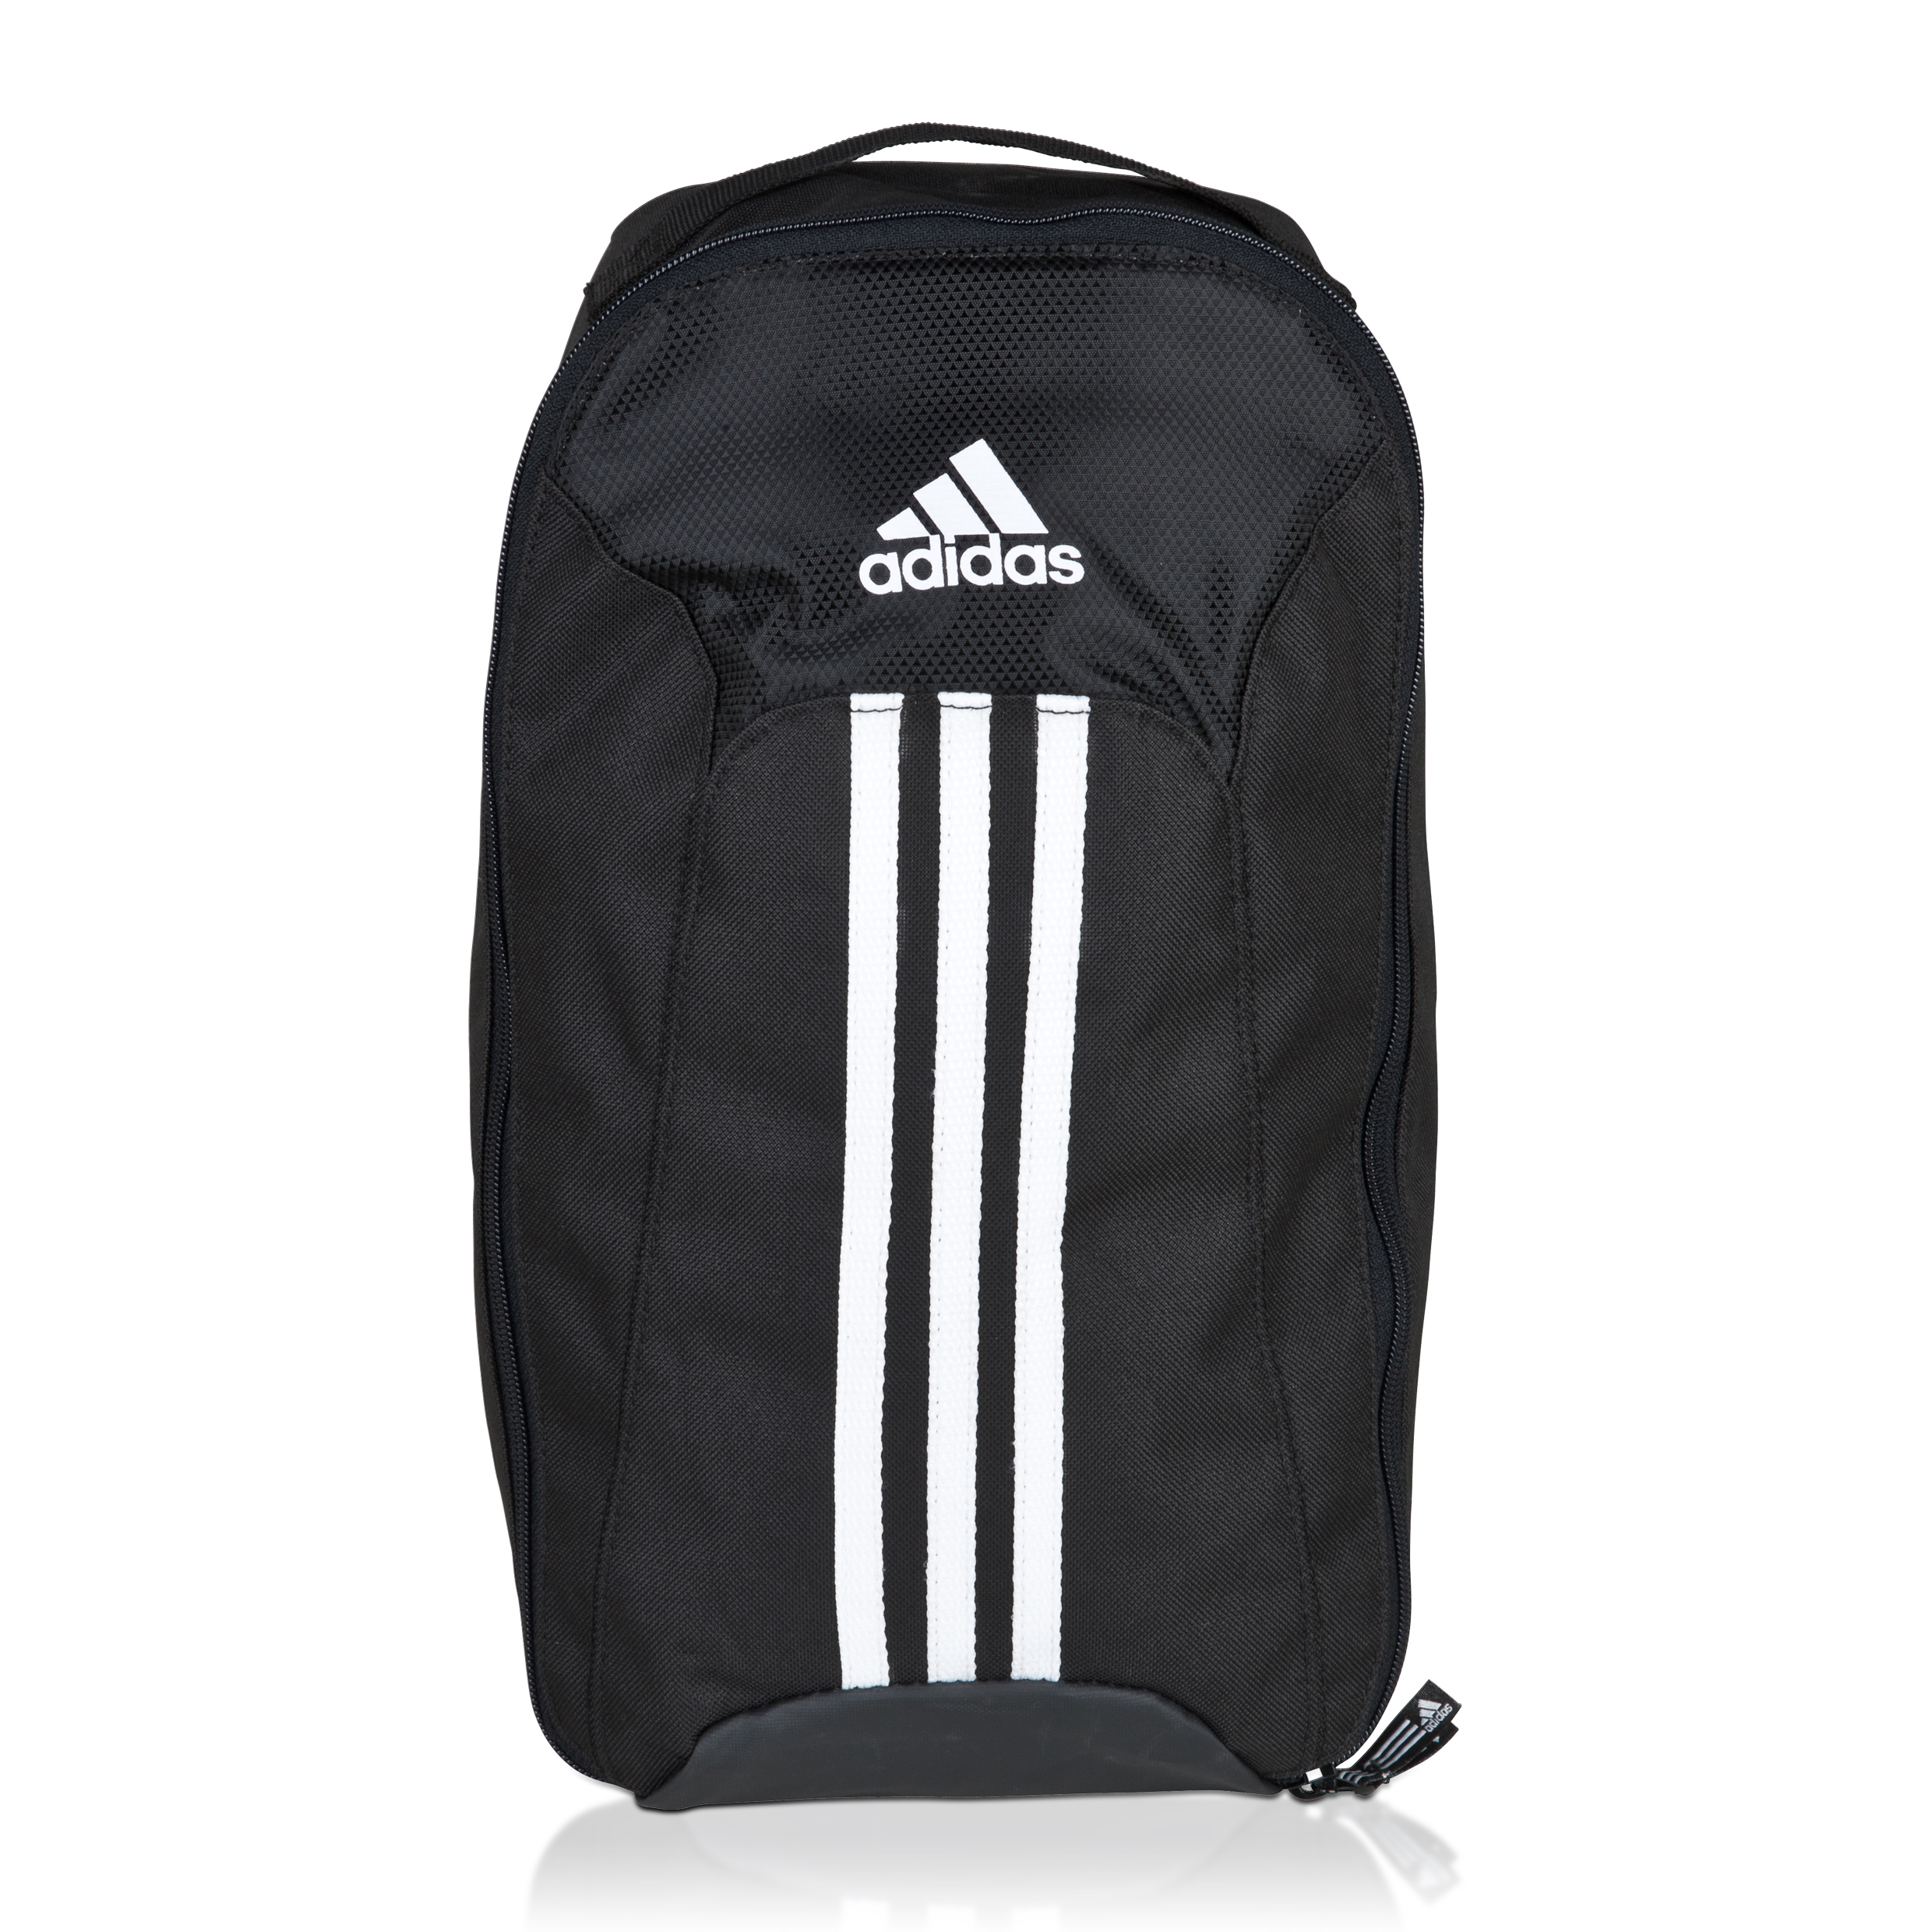 adidas 3Stripe Essentials Shoebag - Black/White